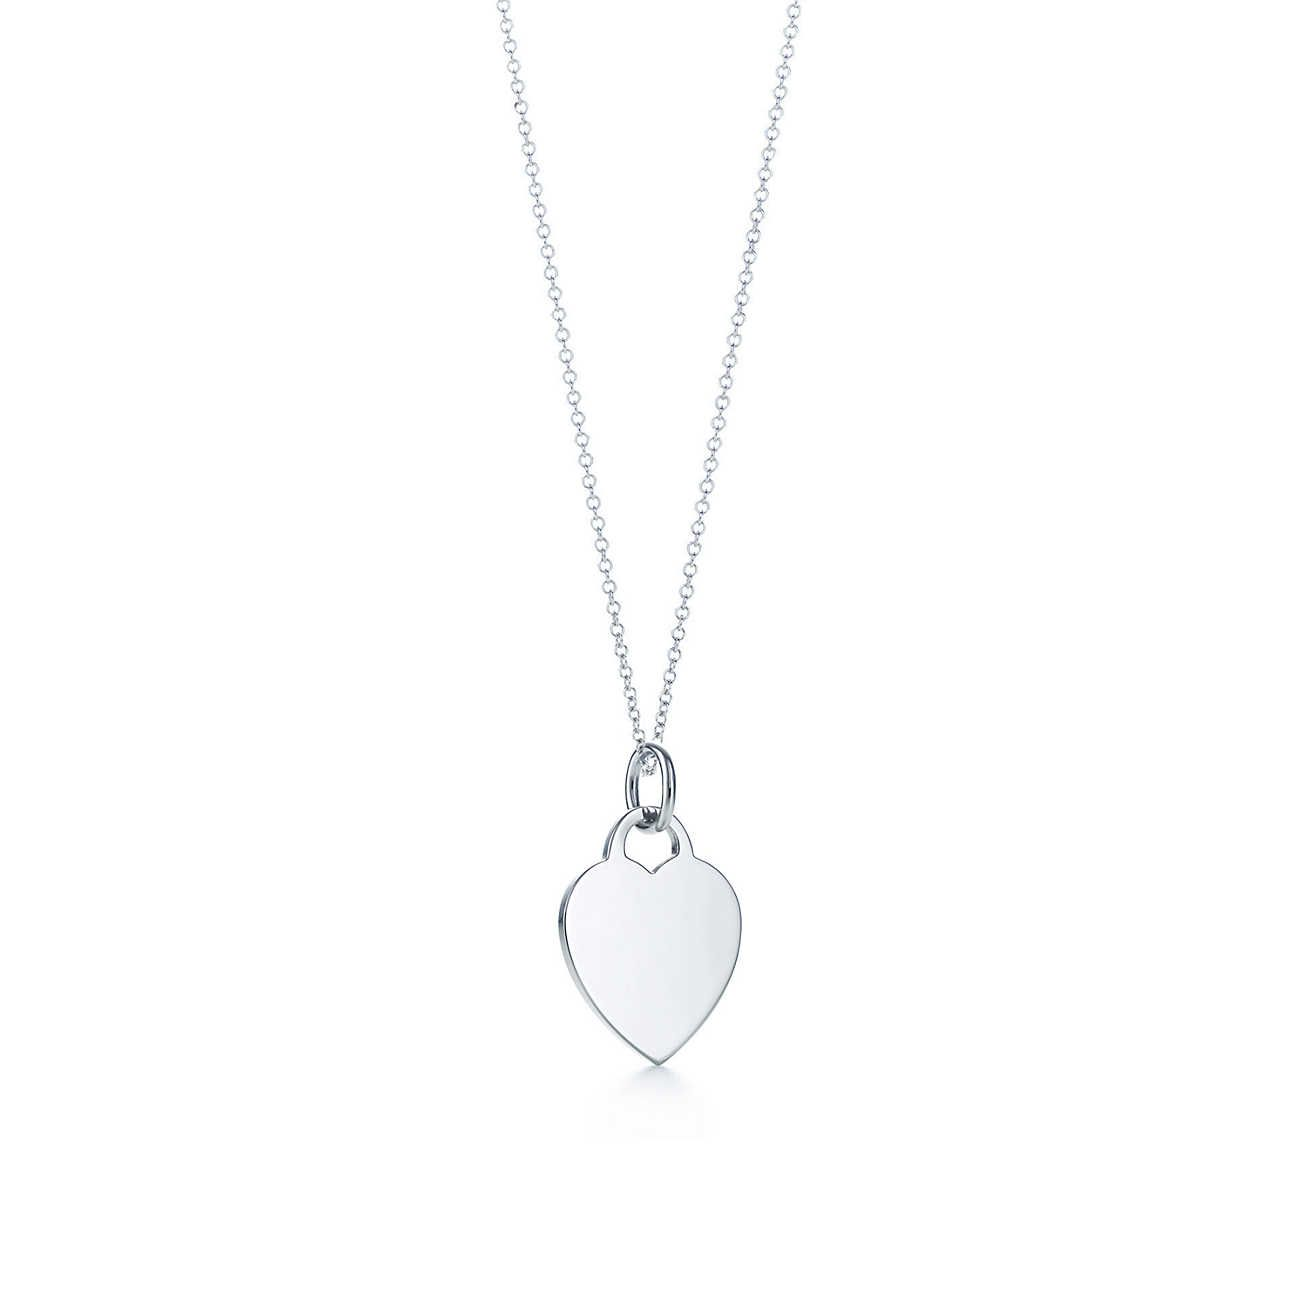 Heart tag charm in sterling silver on a chain.